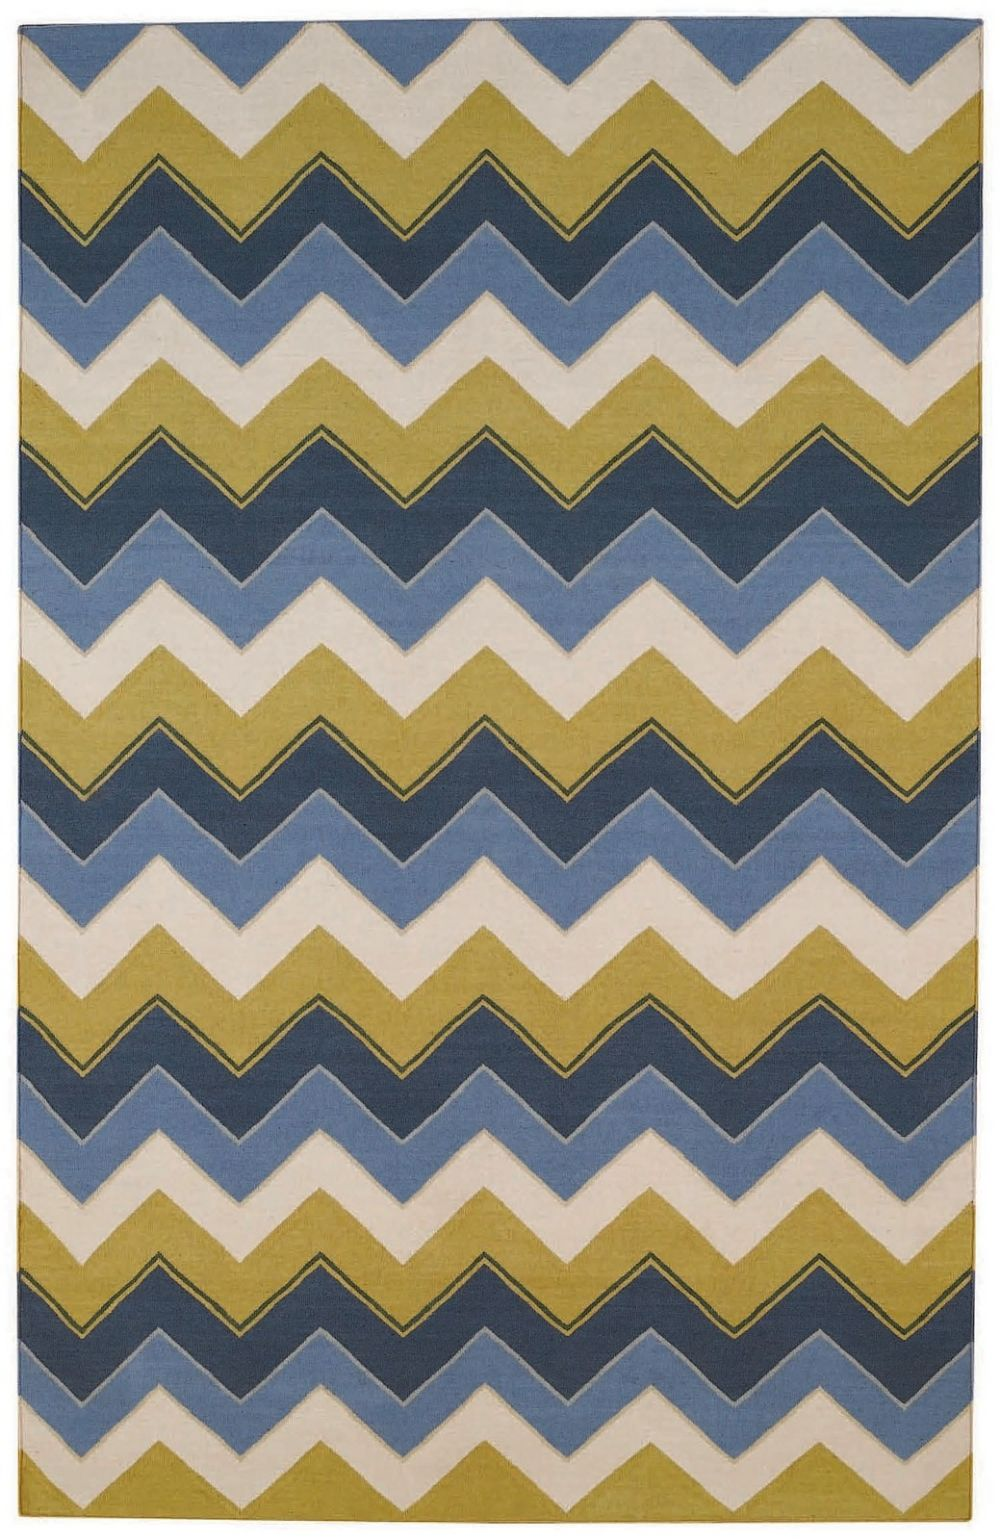 capel irish stitch contemporary area rug collection